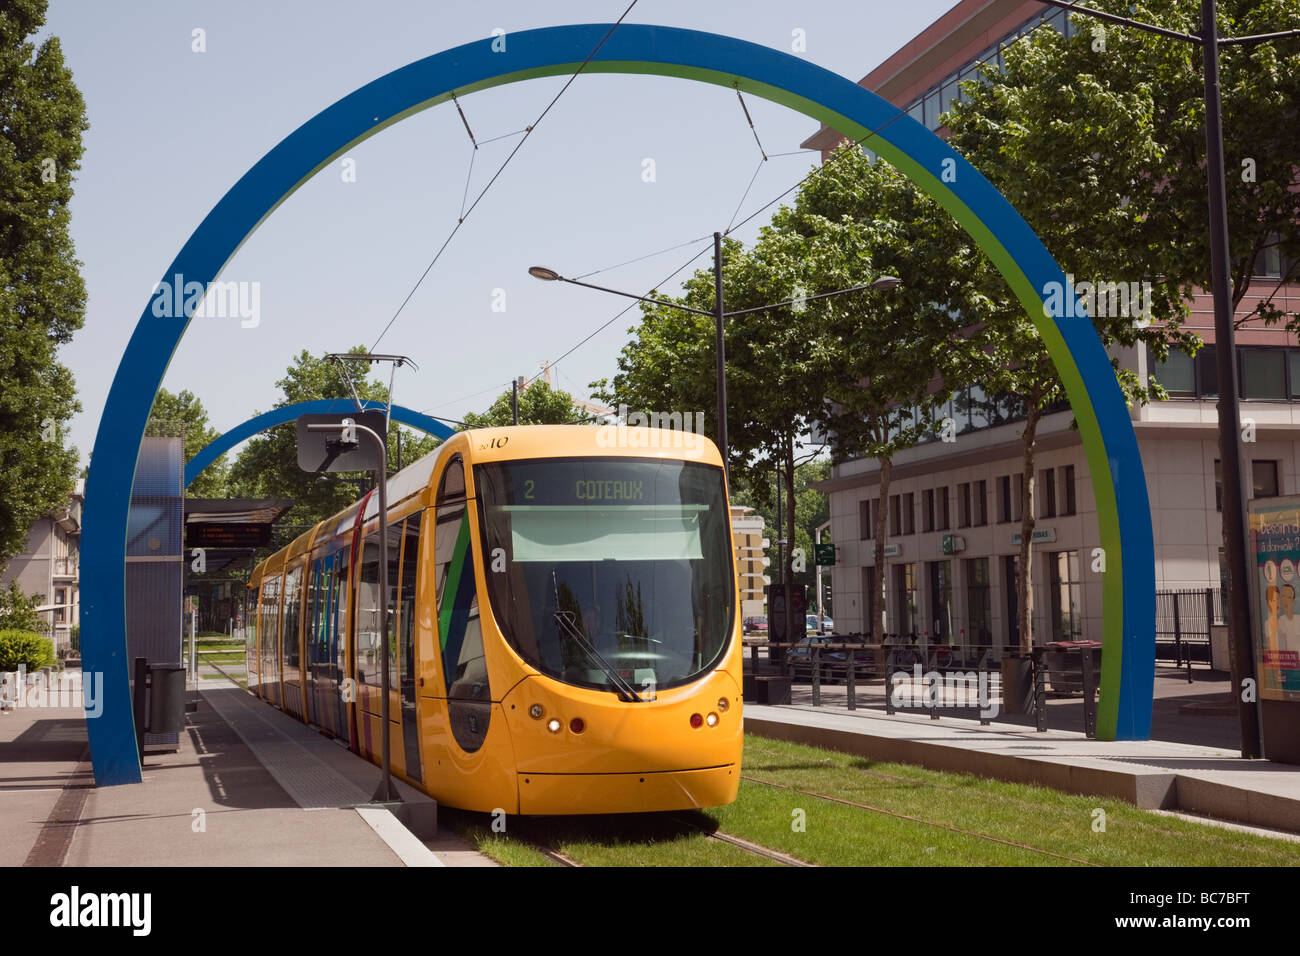 mulhouse alsace france yellow city tram train in local station with stock photo 24748972 alamy. Black Bedroom Furniture Sets. Home Design Ideas